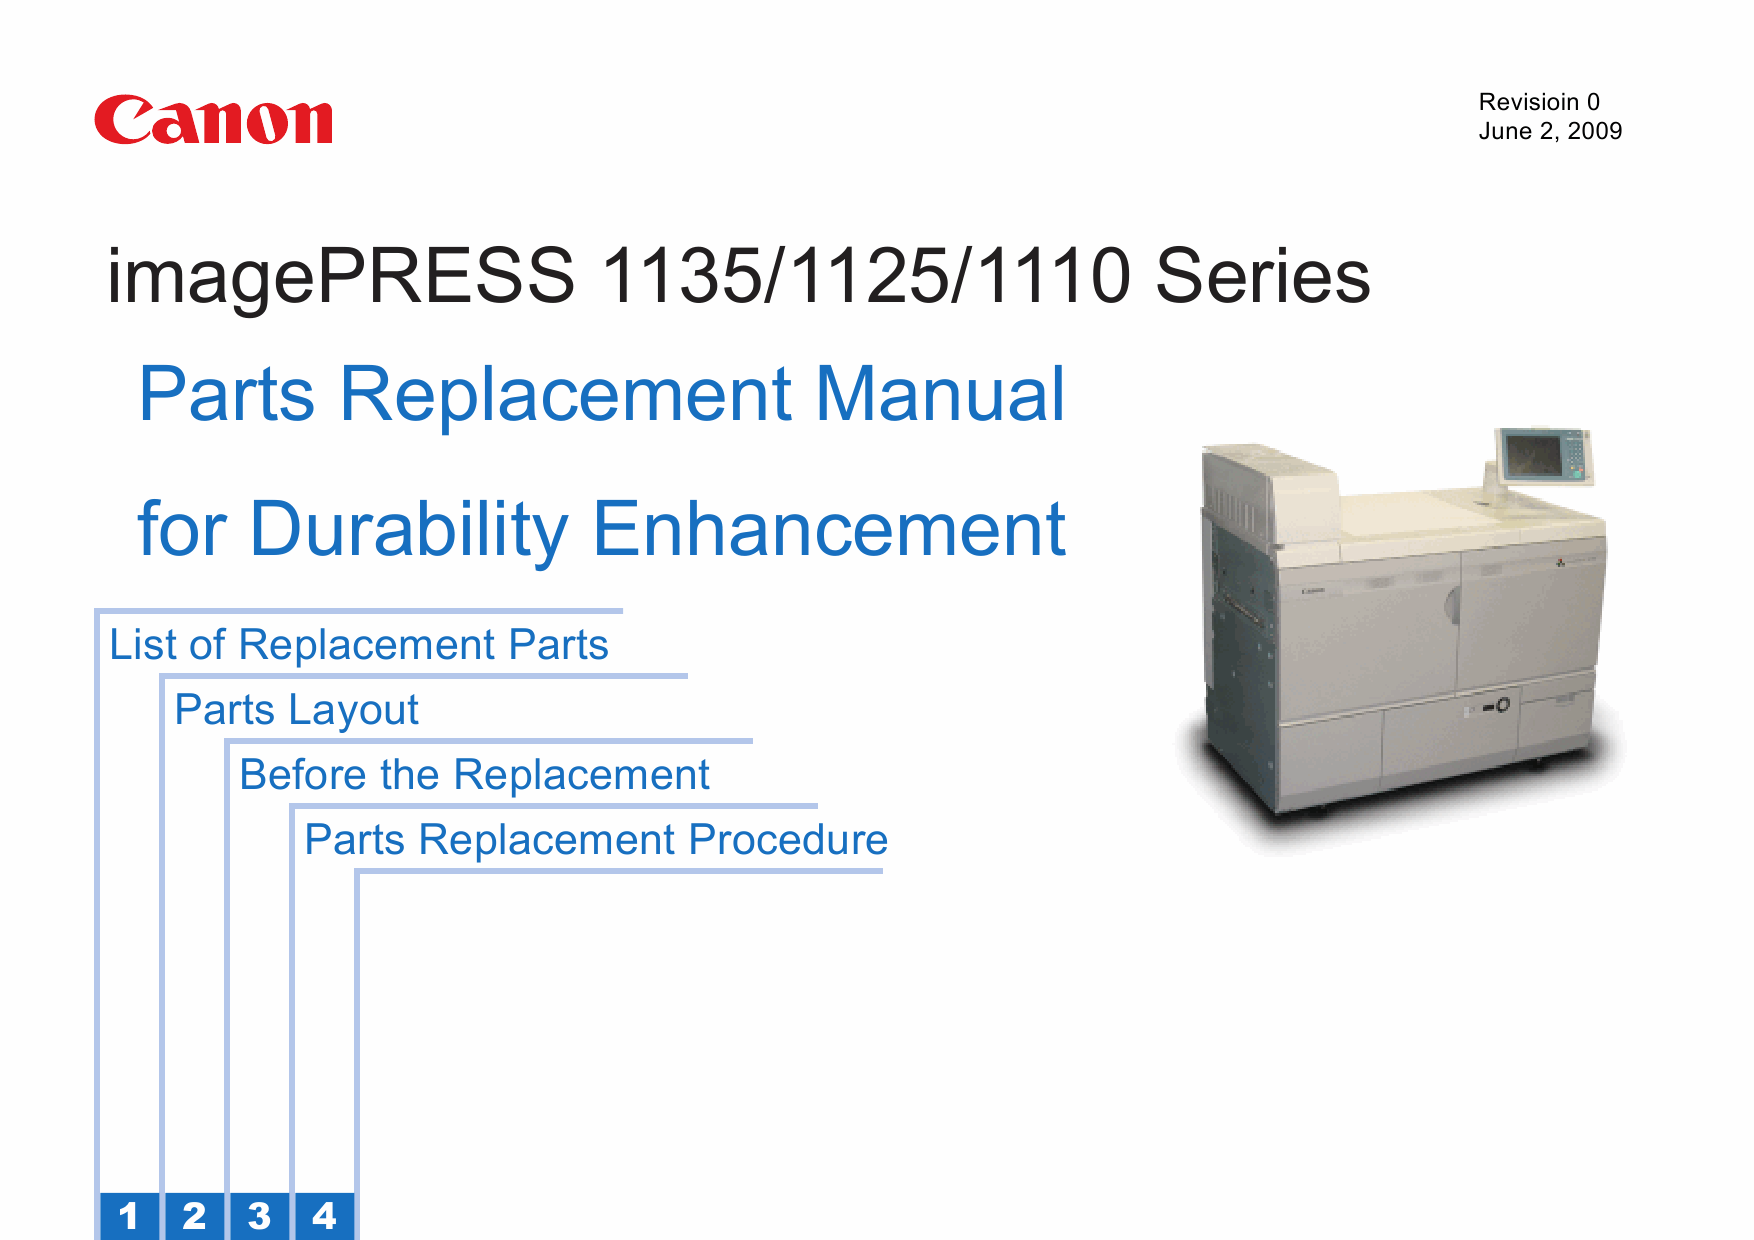 CANON imagePRESS 1110 1125 1135 Parts Replacement Manual PDF download-1